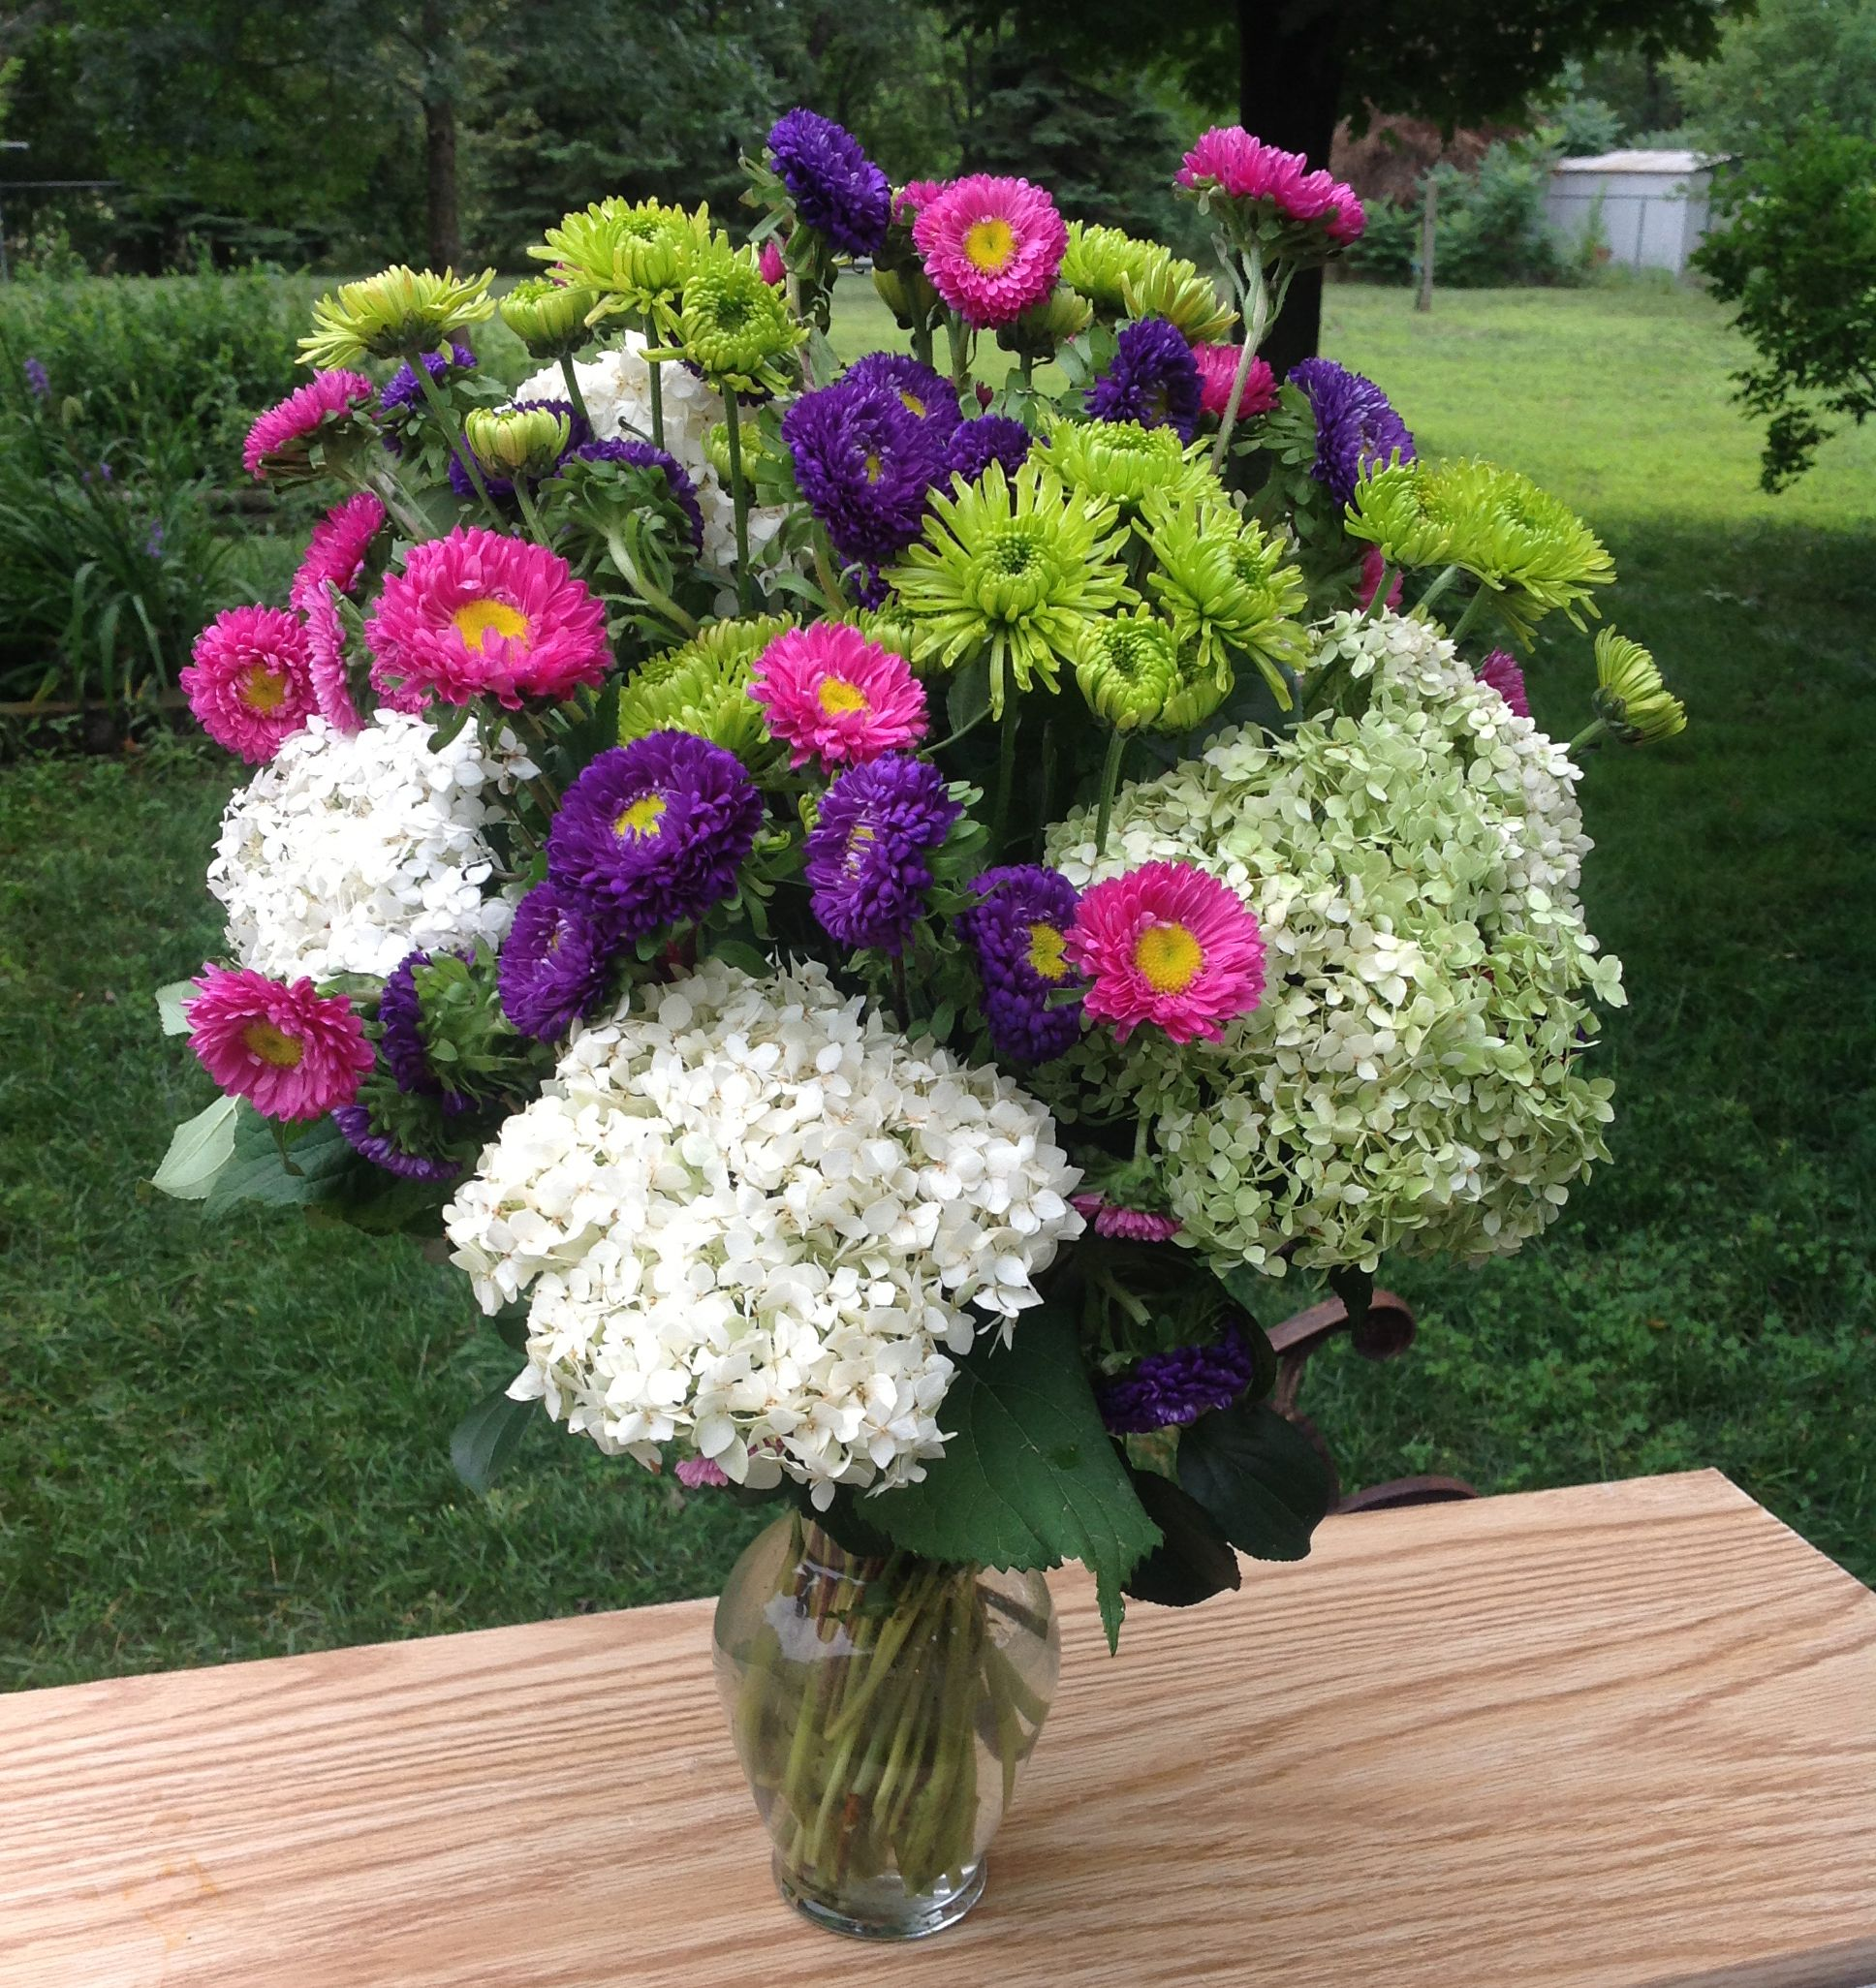 Lovely Arrangement Using Hydrangea Asters And Lime Green Daisies